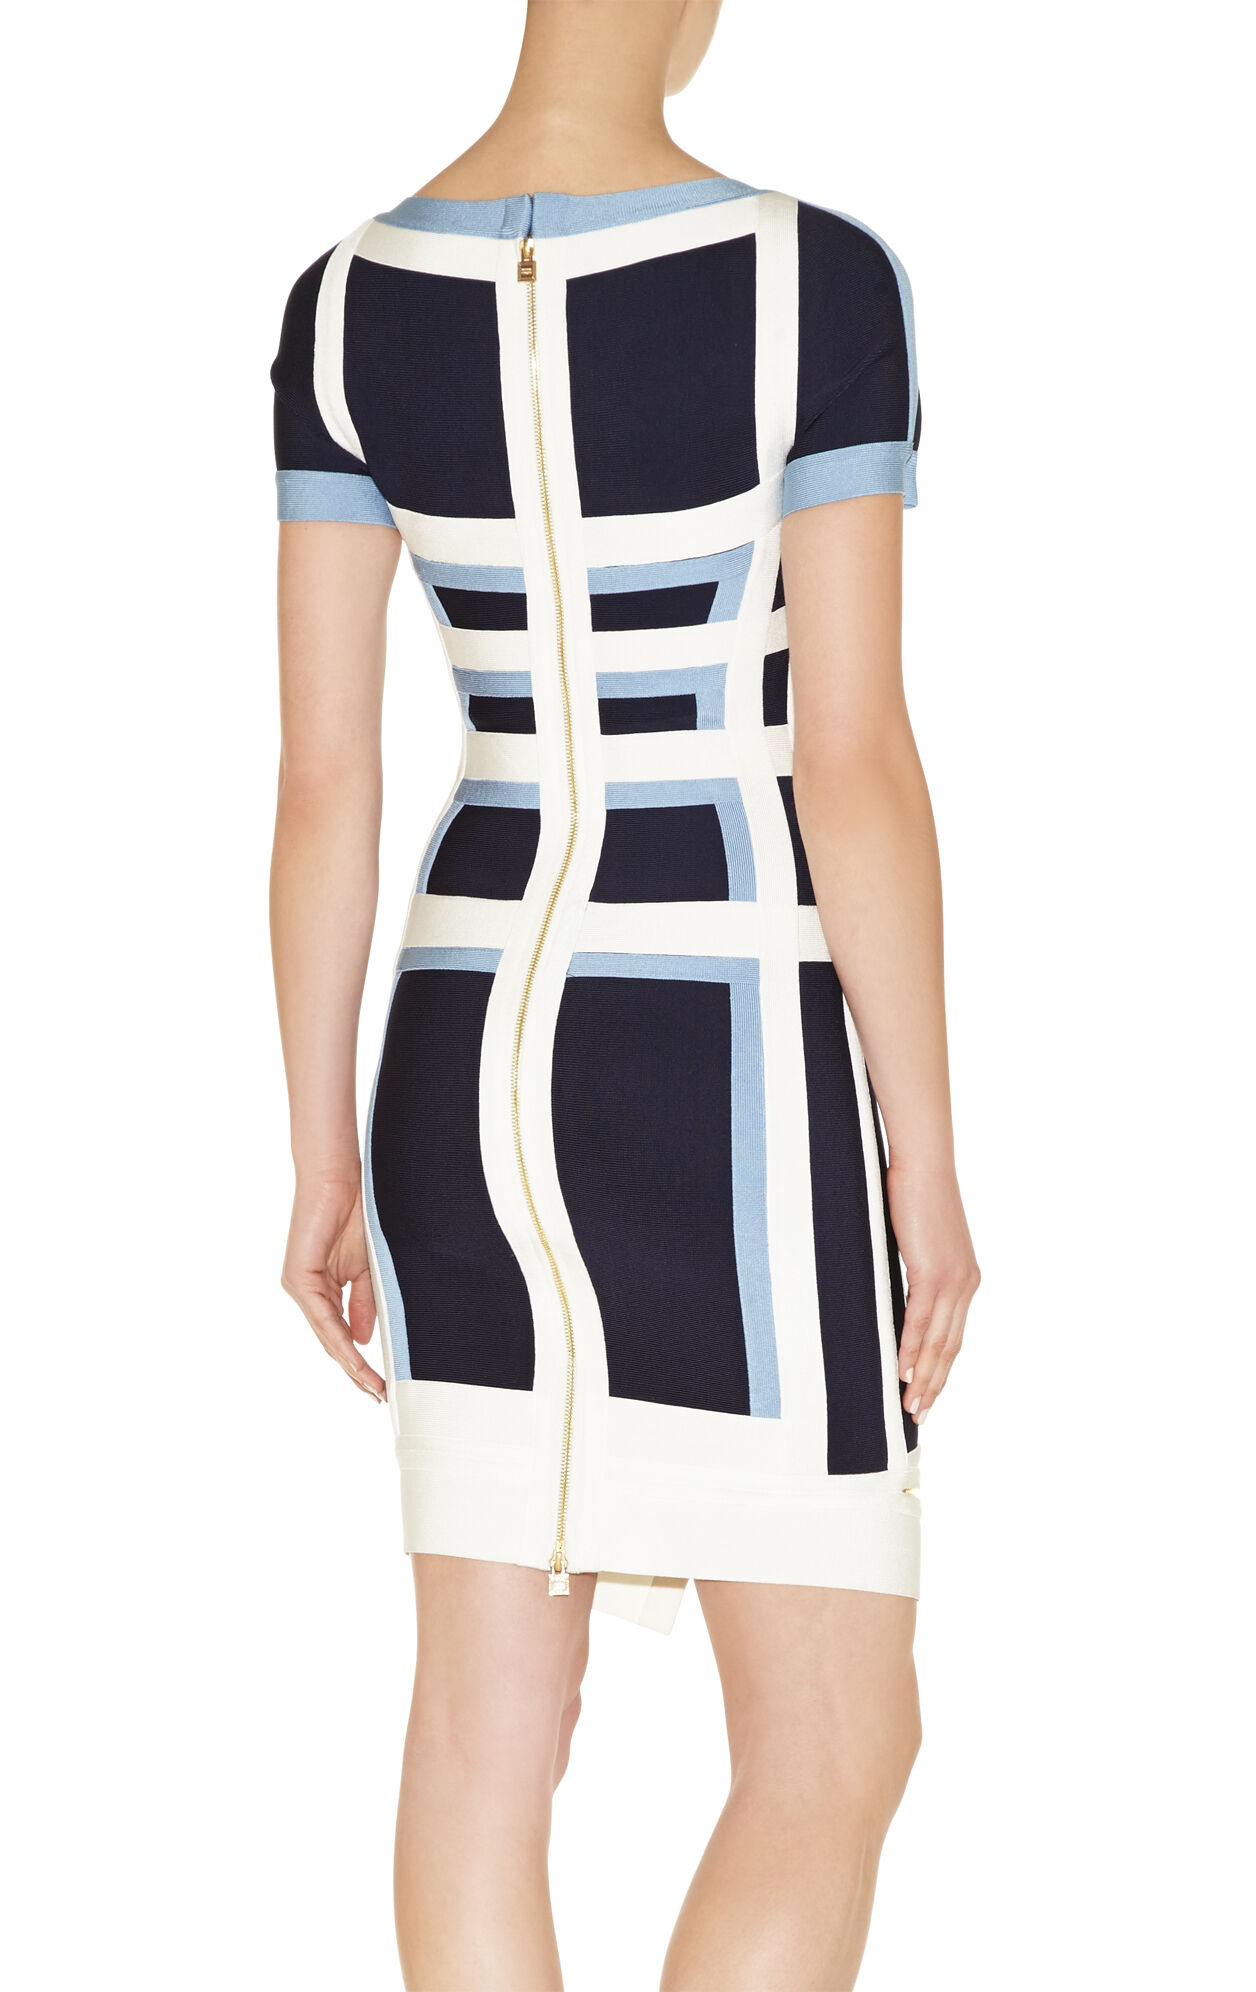 Jassalyn Colorblocked Zipper-Detailed Peplum Dress